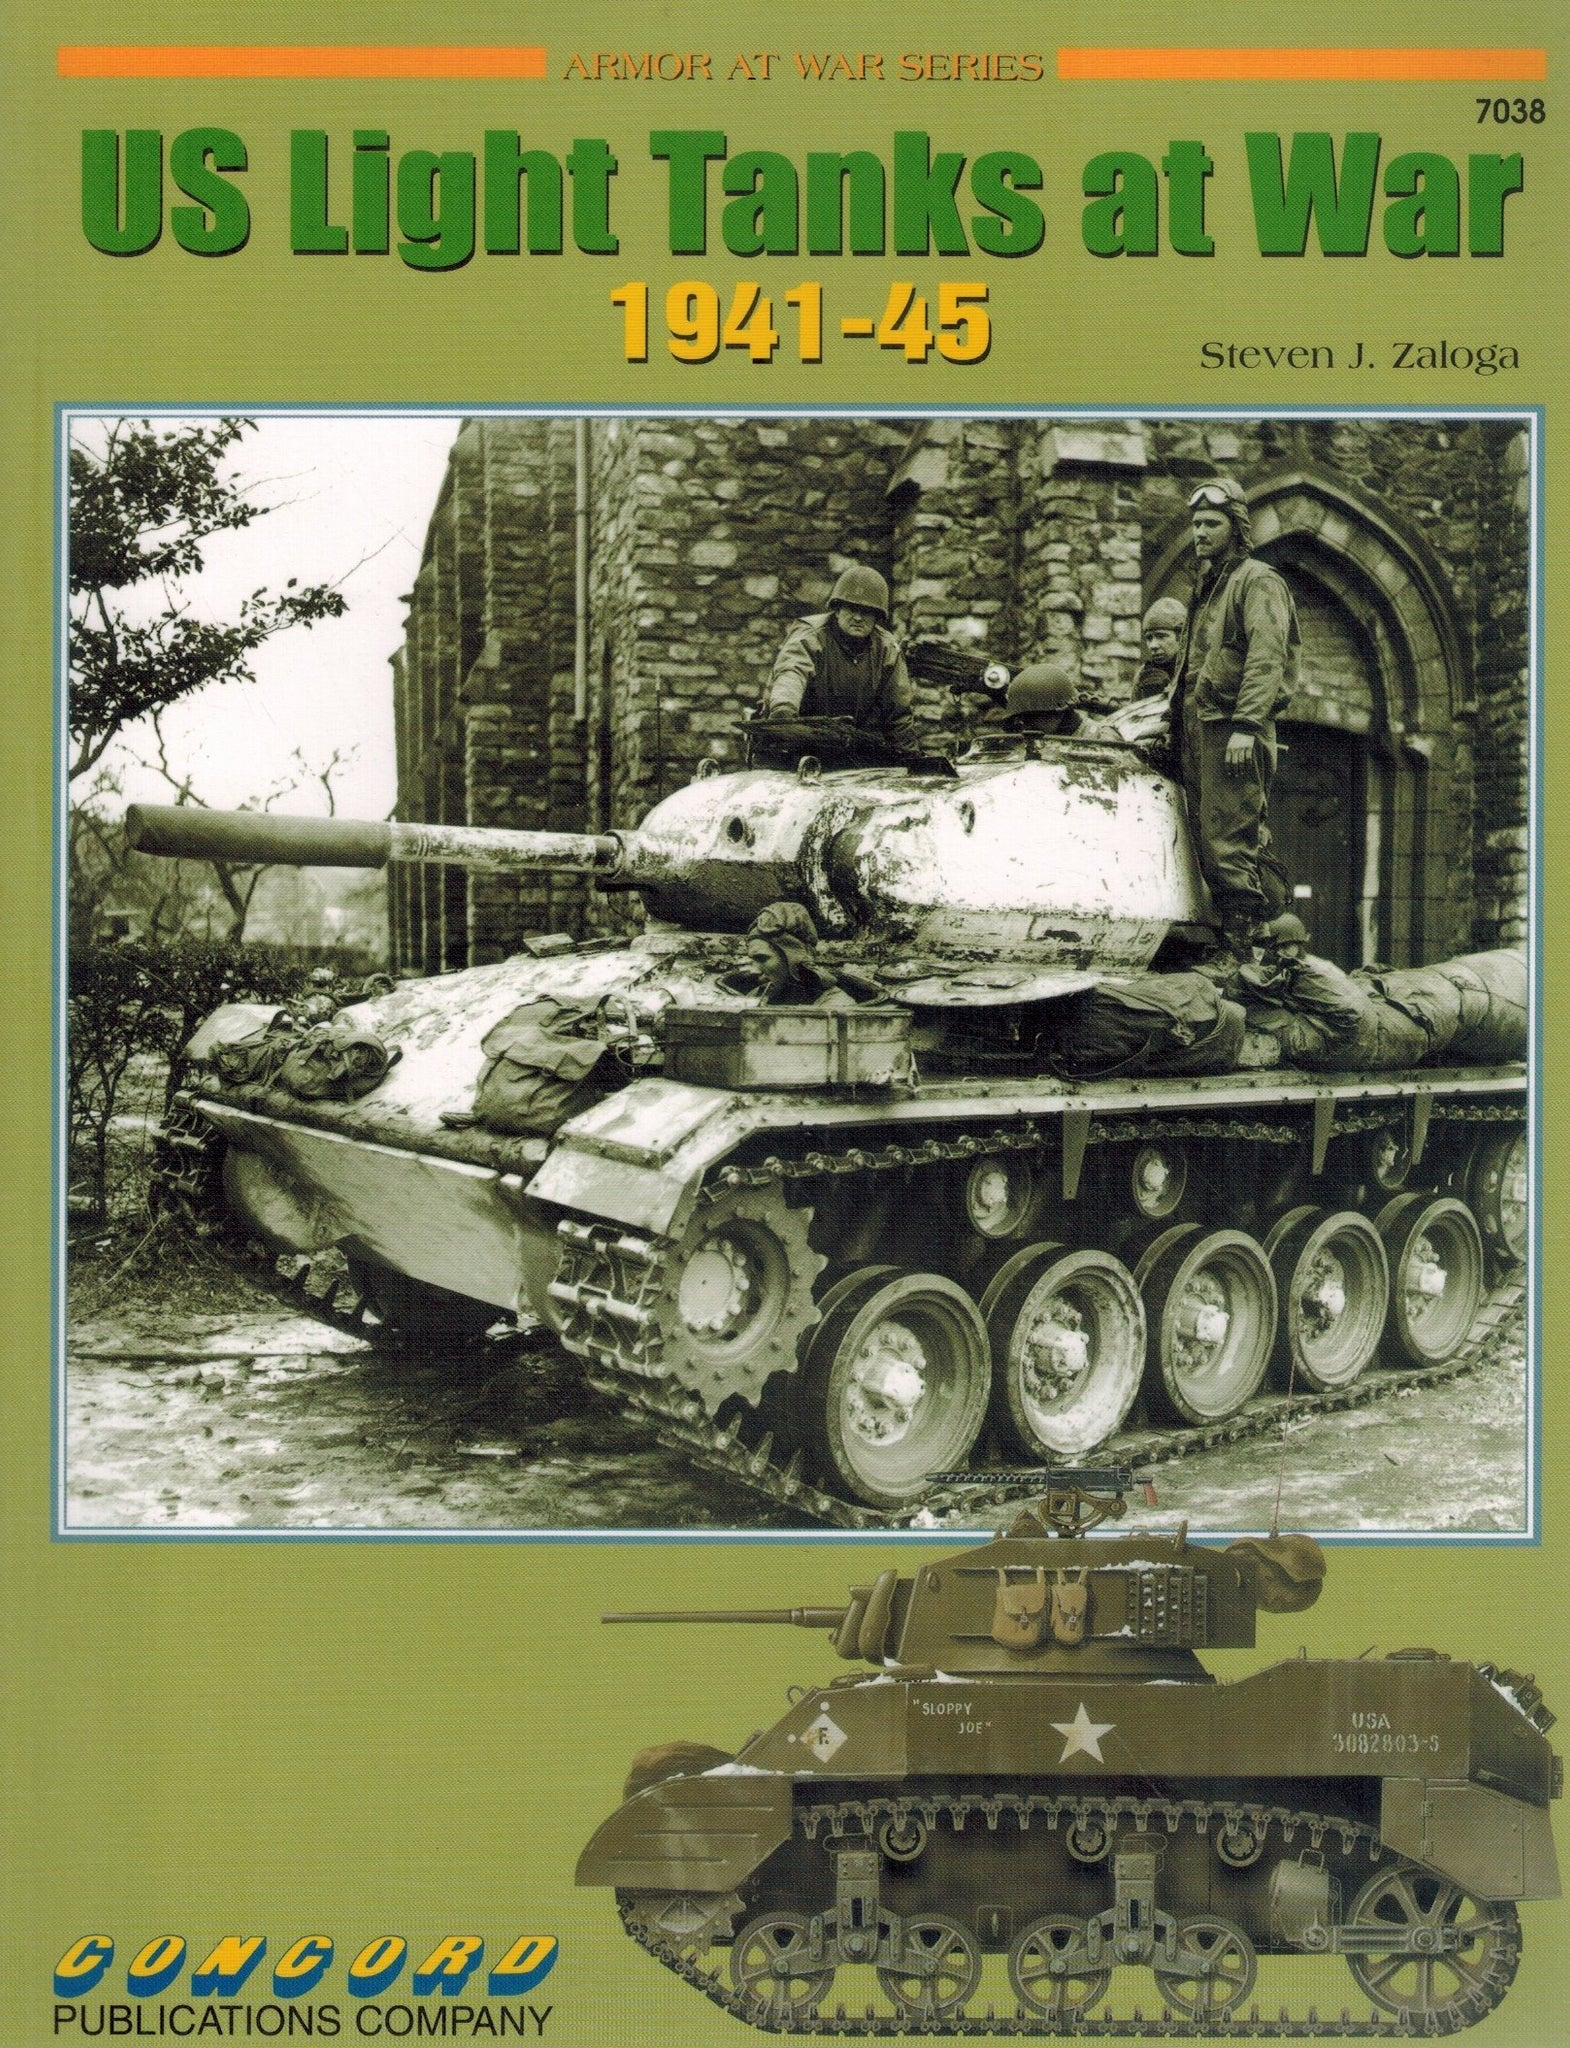 U. S. LIGHT TANKS AT WAR 1941-1945  by Zaloga, Steven J.